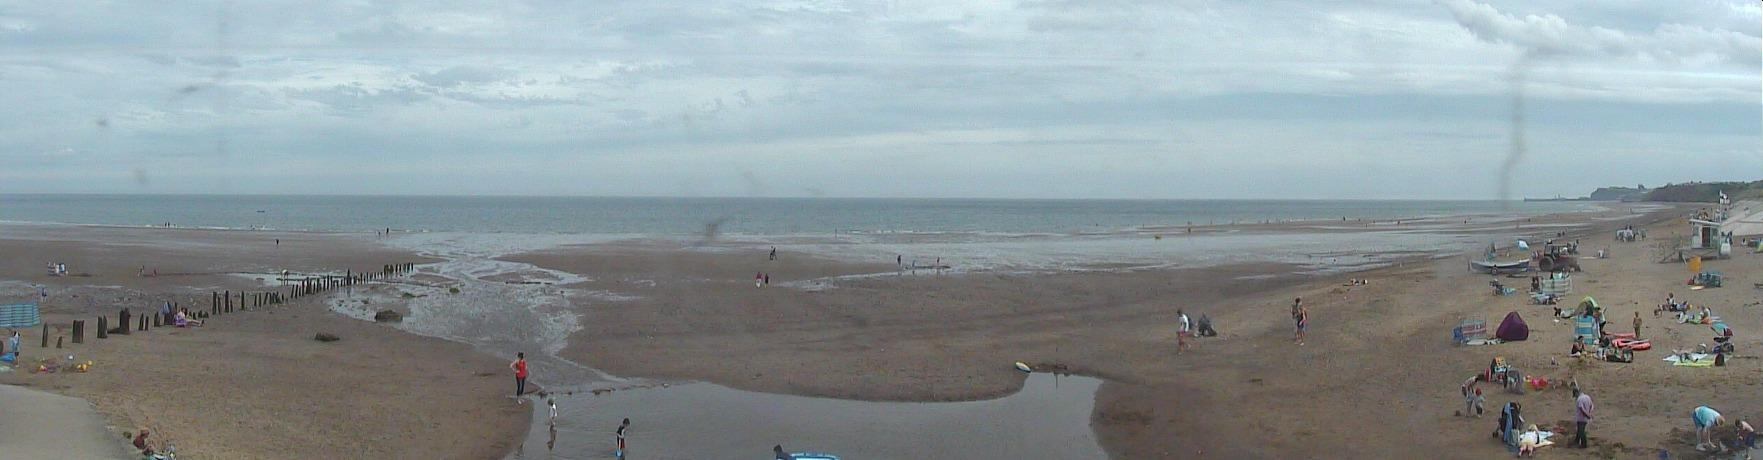 Latest webcam still for Whitby